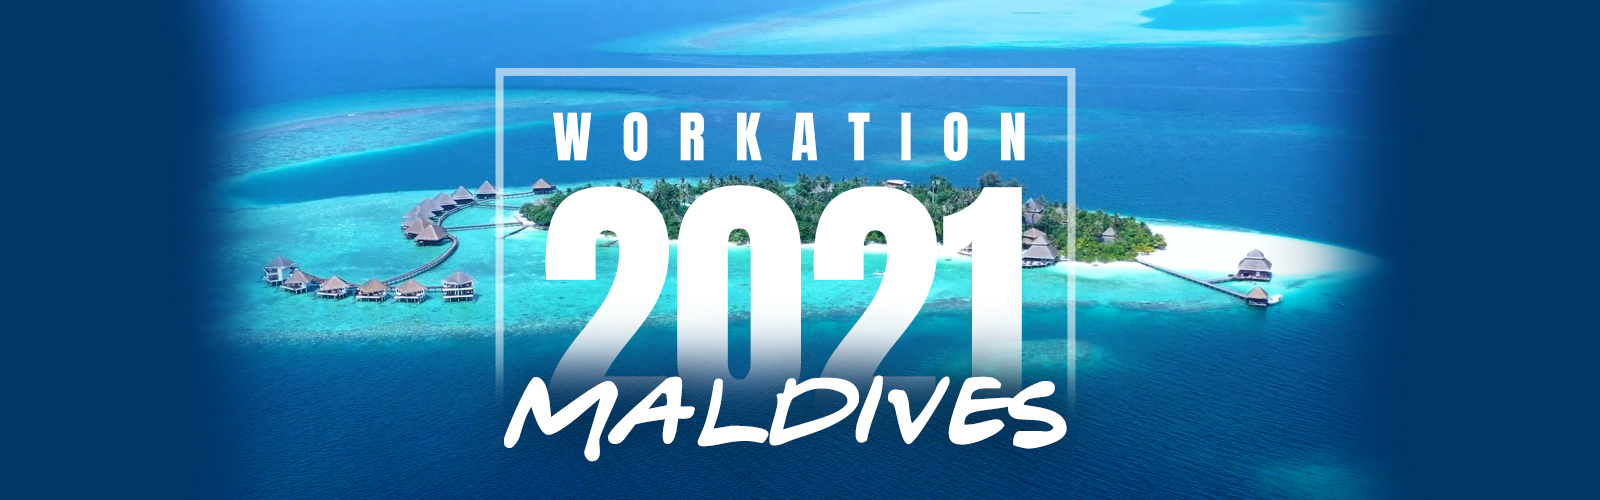 What happens in Maldives, doesn't stay in Maldives! Inside LogiNext's Workation